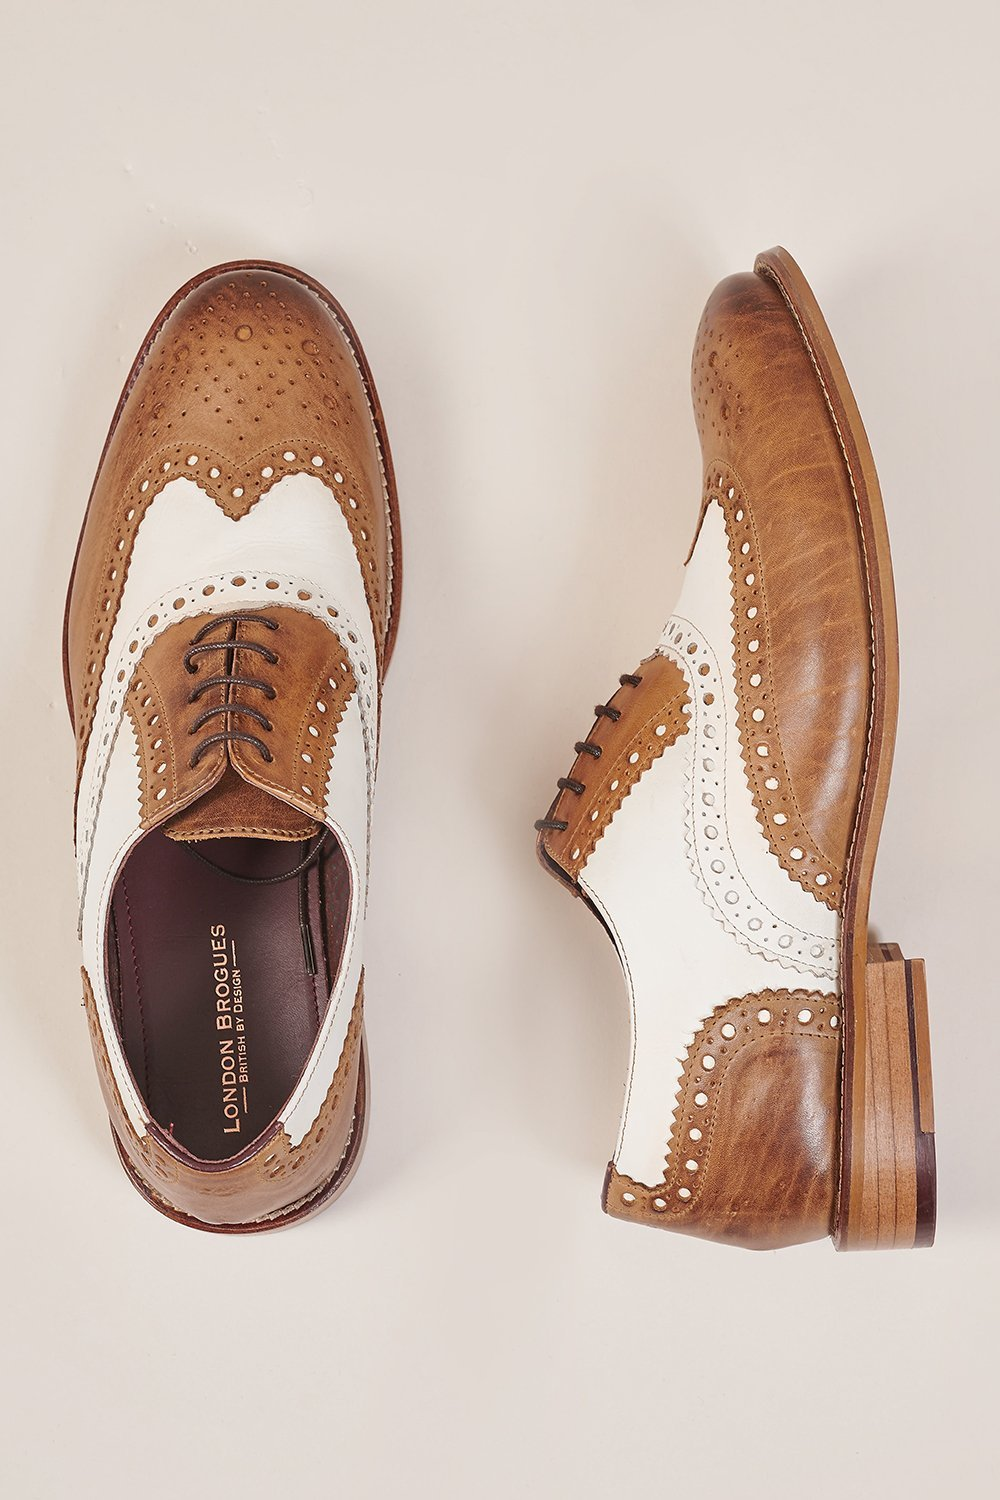 London Brogues Gatsby Leather Brogue Tan/White